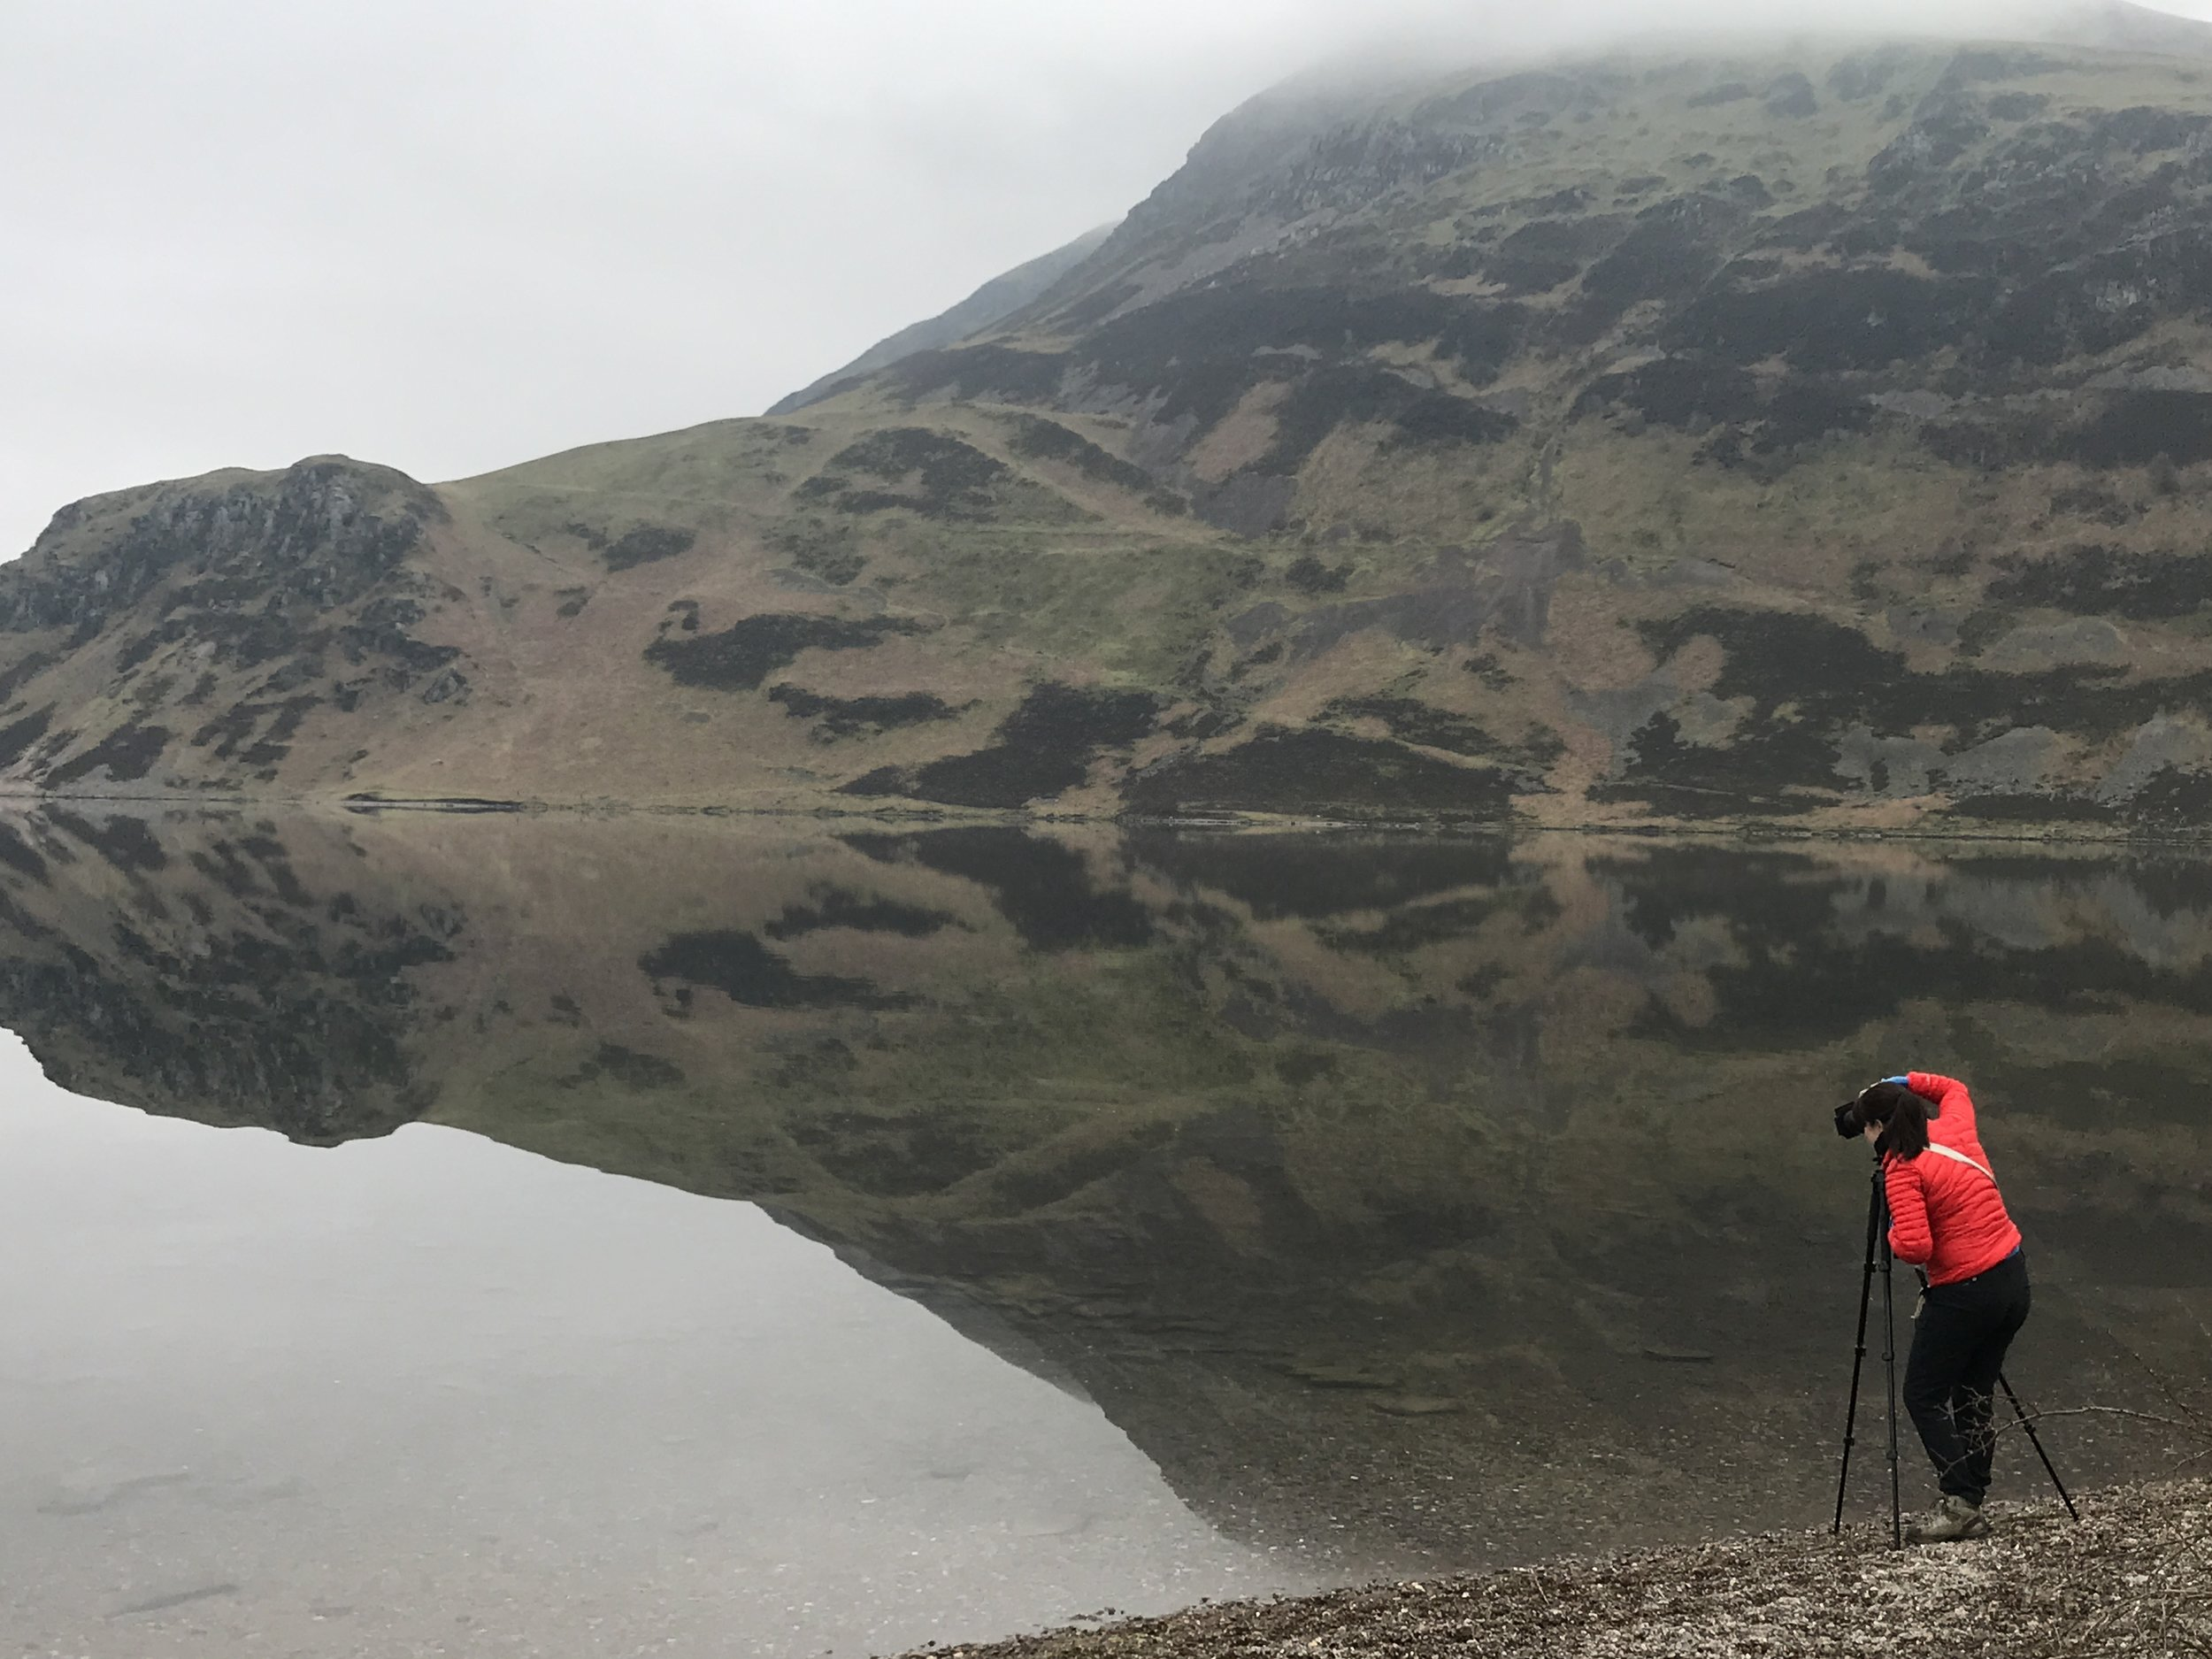 Vicki at Ennerdale on an atmospheric day. She is an invaluable help to me.